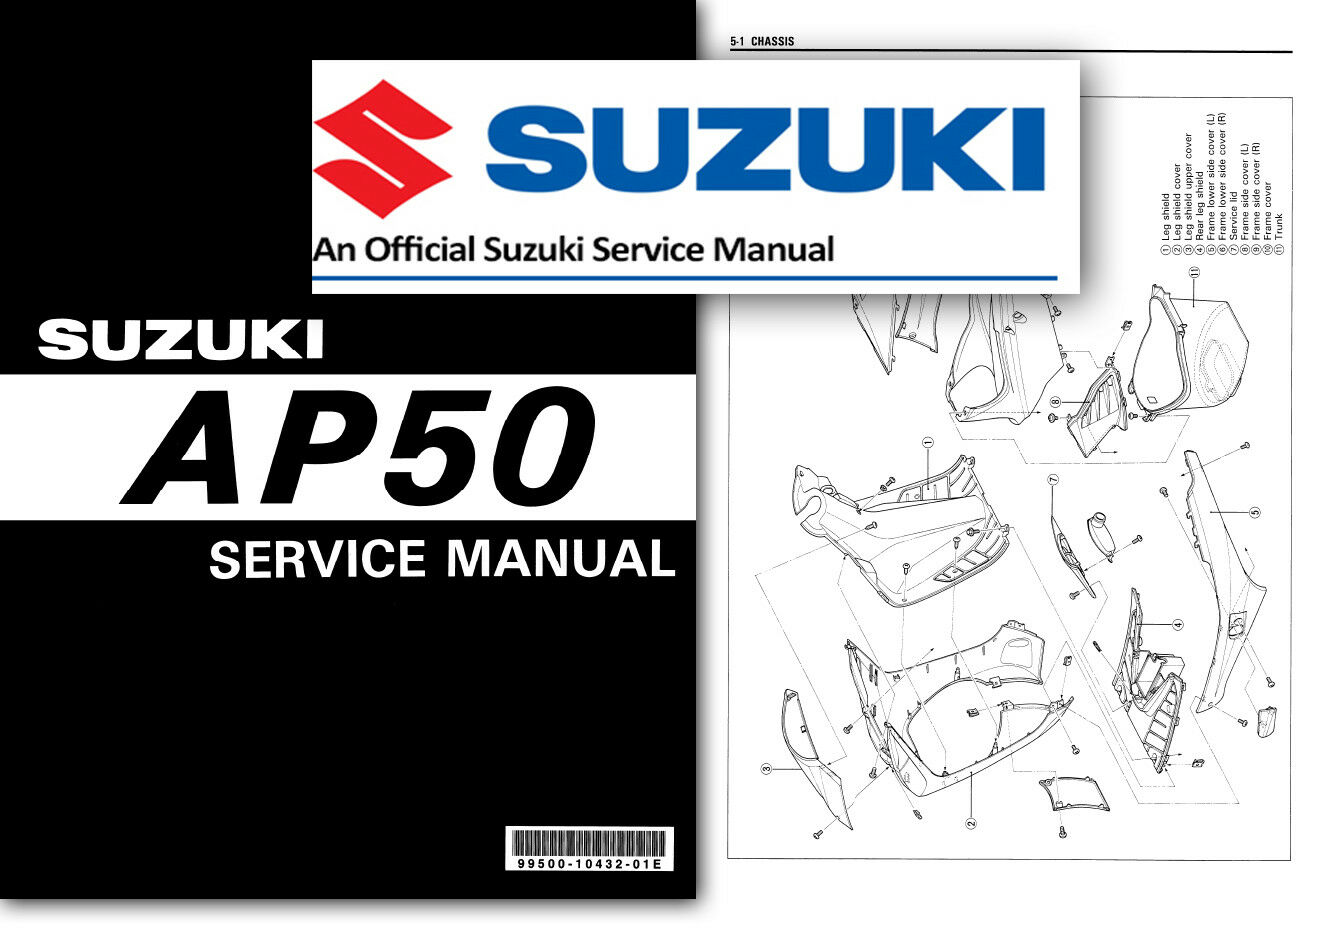 Suzuki AY50 KATANA Workshop Service Shop Factory Manual Scooter AY 50 1 of 2FREE  Shipping ...